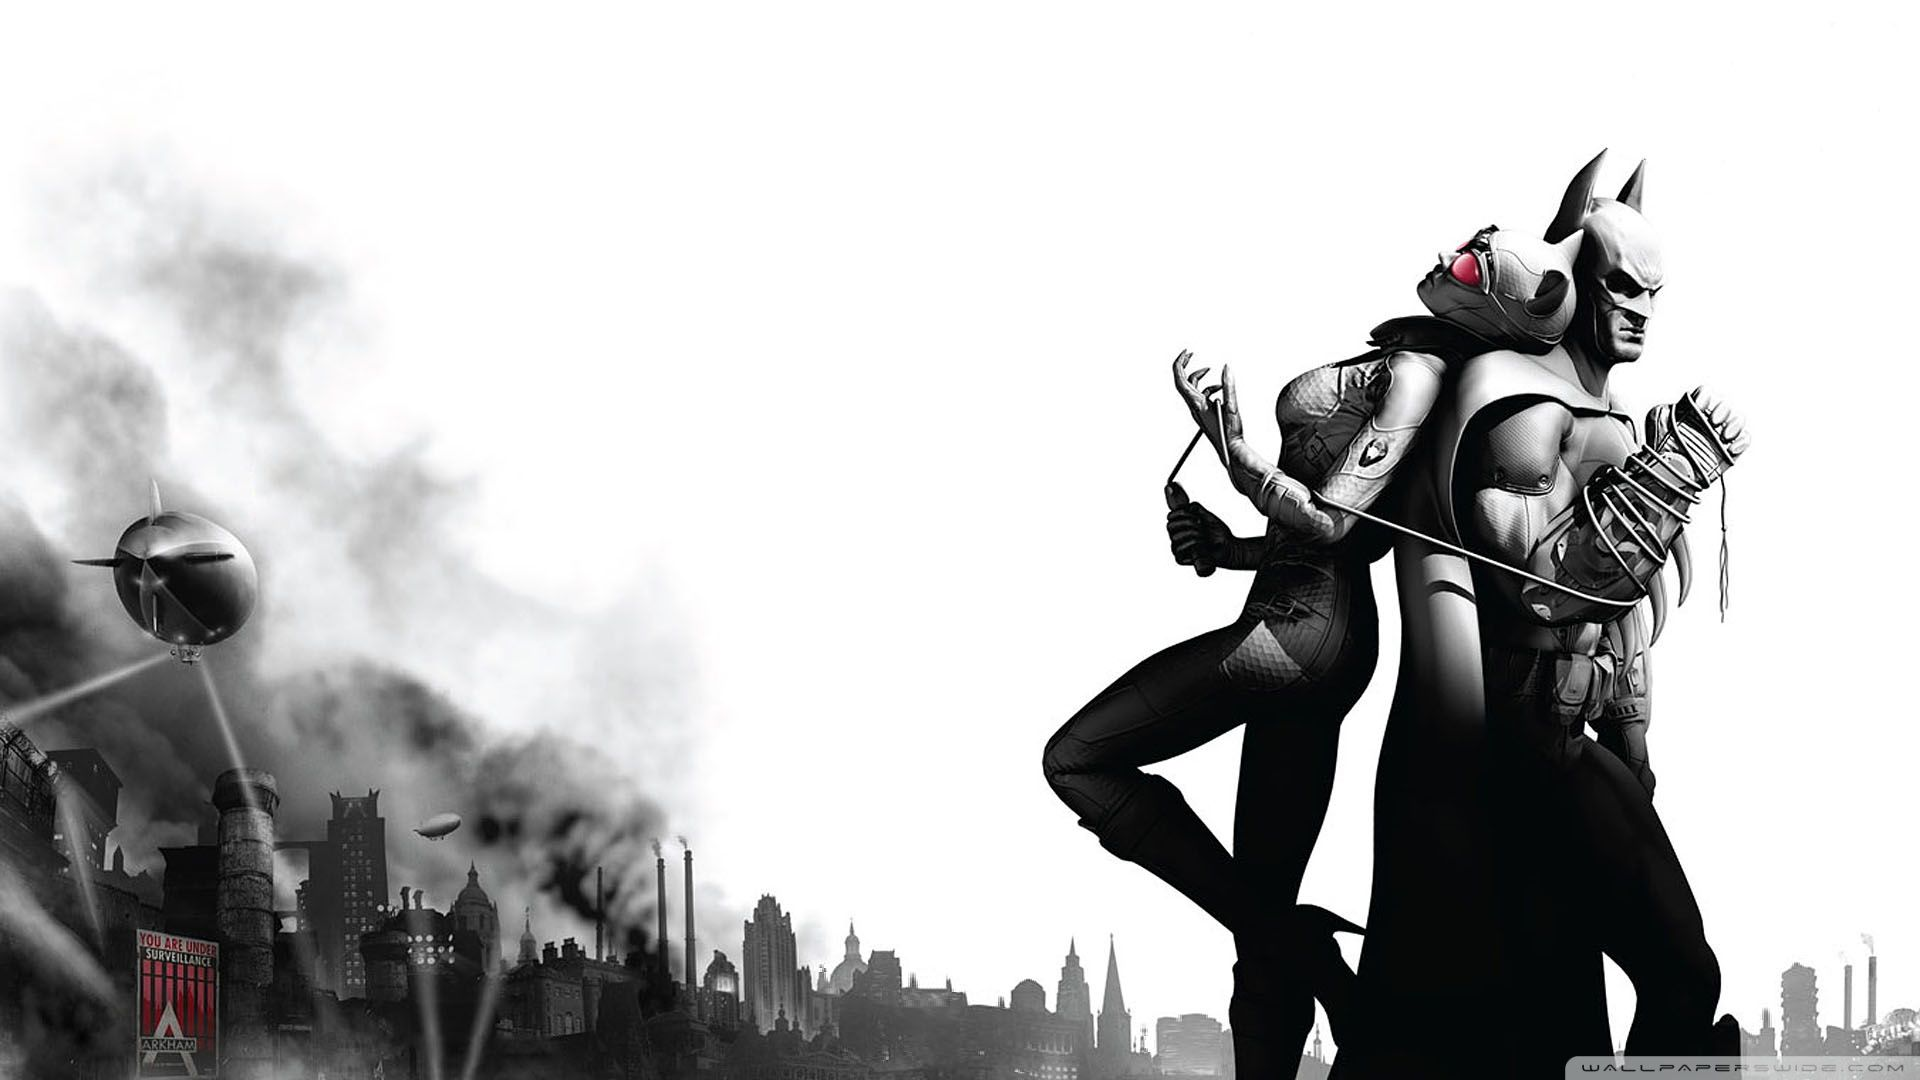 wallpapers HD 1920x1080 batman arkham city   Taringa 1920x1080